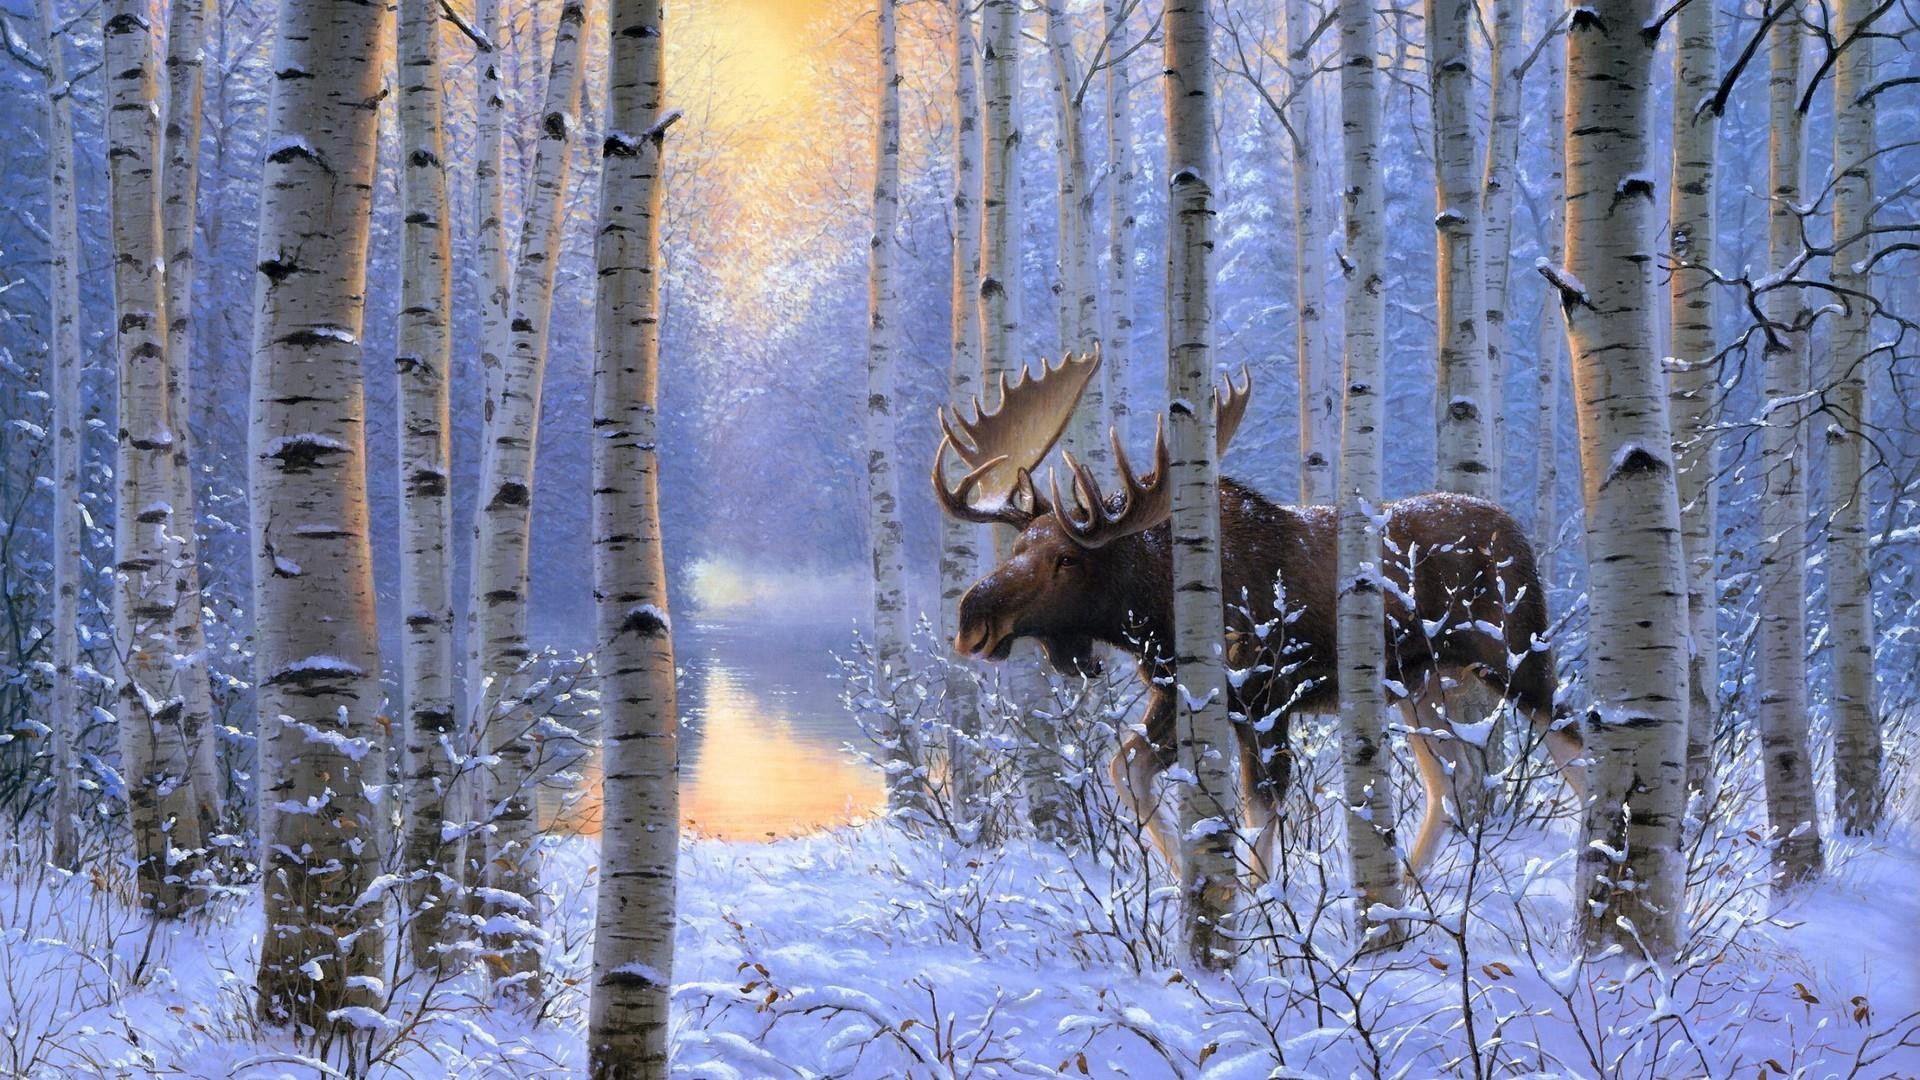 Res: 1920x1080, Moose In The Snowy Birch Forest - Painting Art Wallpaper | Wallpaper Studio  10 | Tens of thousands HD and UltraHD wallpapers for Android, Windows and  Xbox